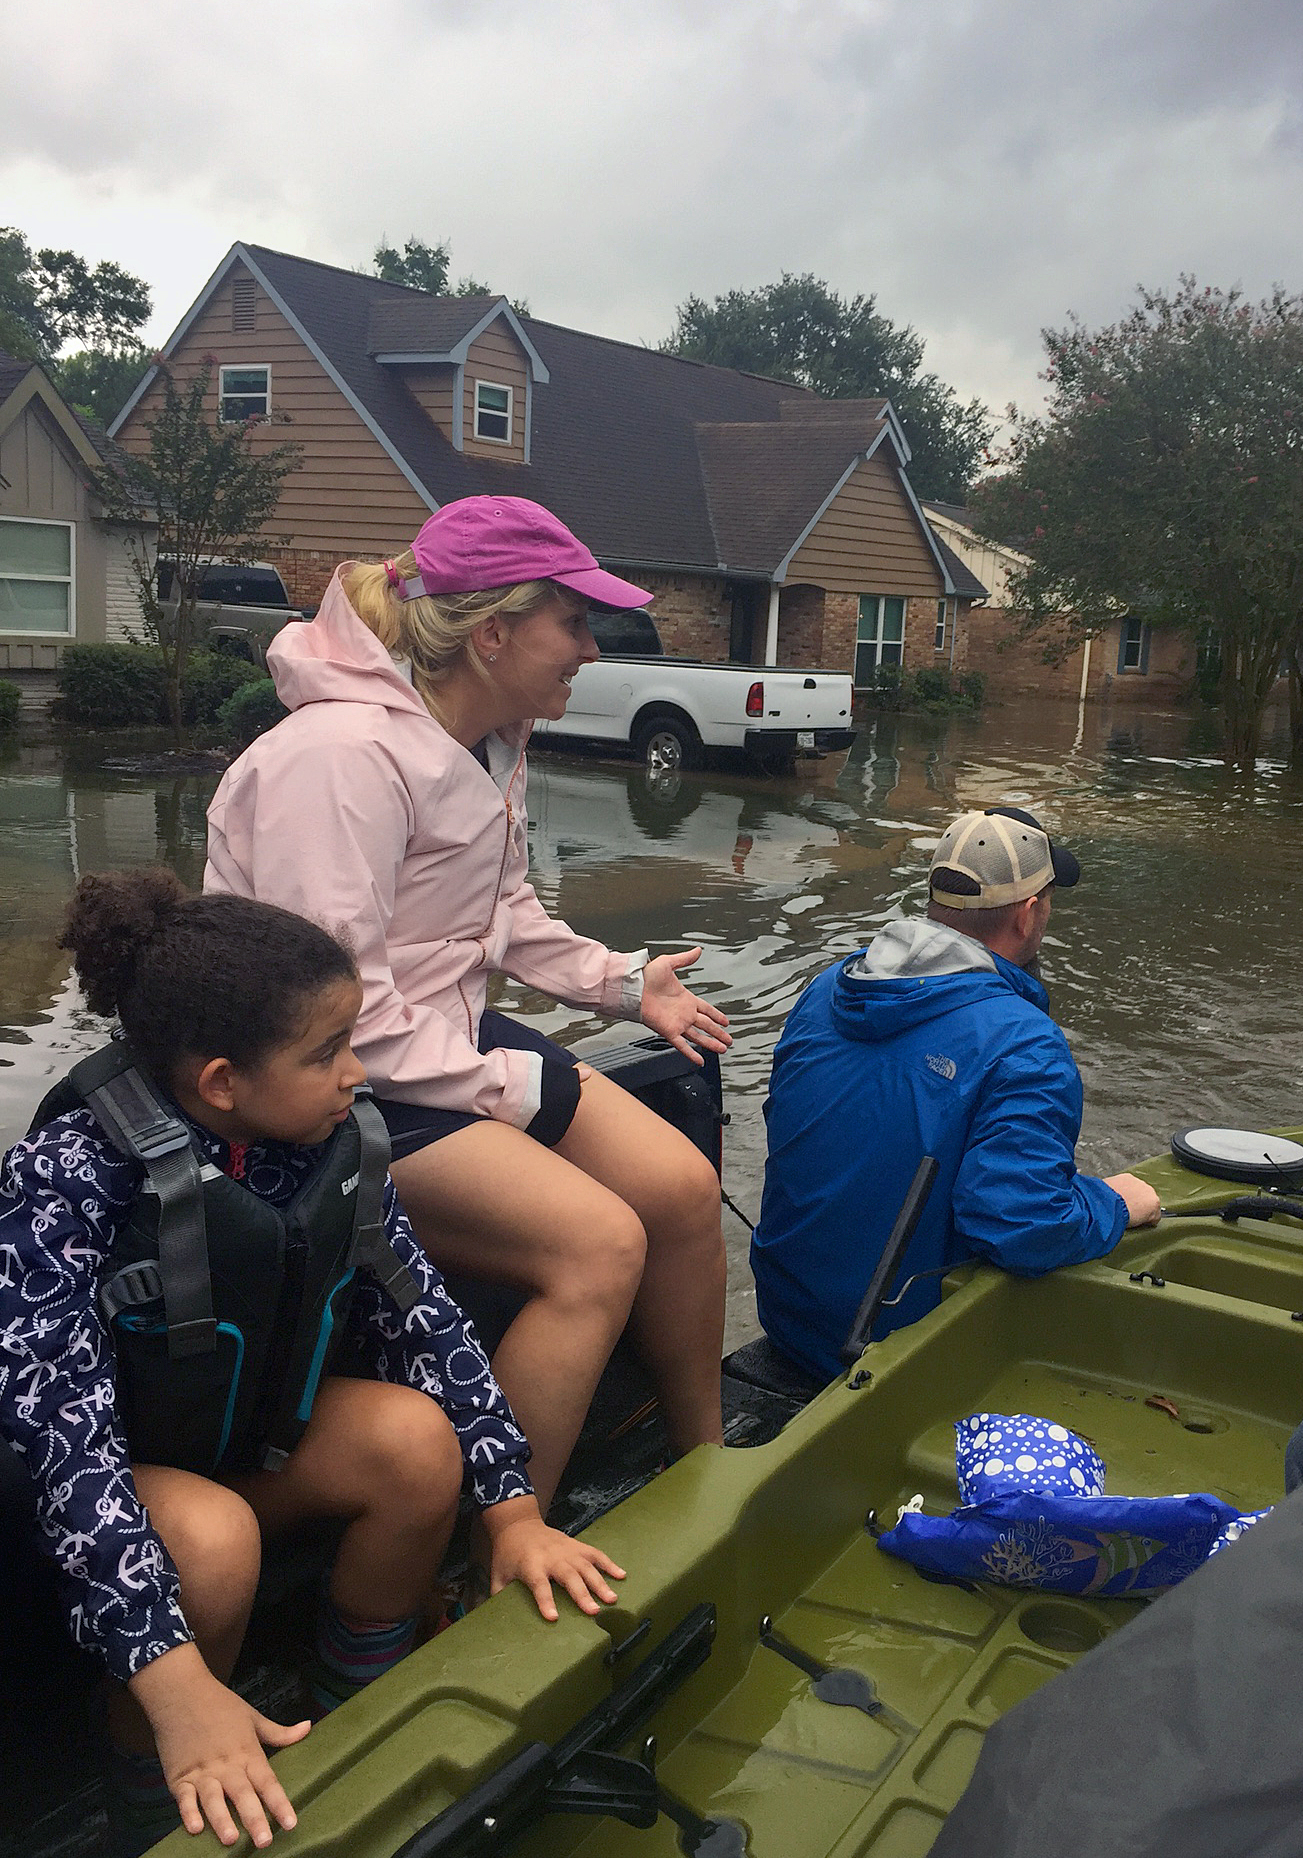 A team from Christ United Methodist Church, in Sugar Land, Texas, evacuated by boat the family of the Rev. R. DeAndre Johnson, a member of the church staff. Johnson said his home had taken on close to a foot of water on Aug. 27, when he made the decision to evacuate. Photo courtesy the Rev. Chappell Tempell.